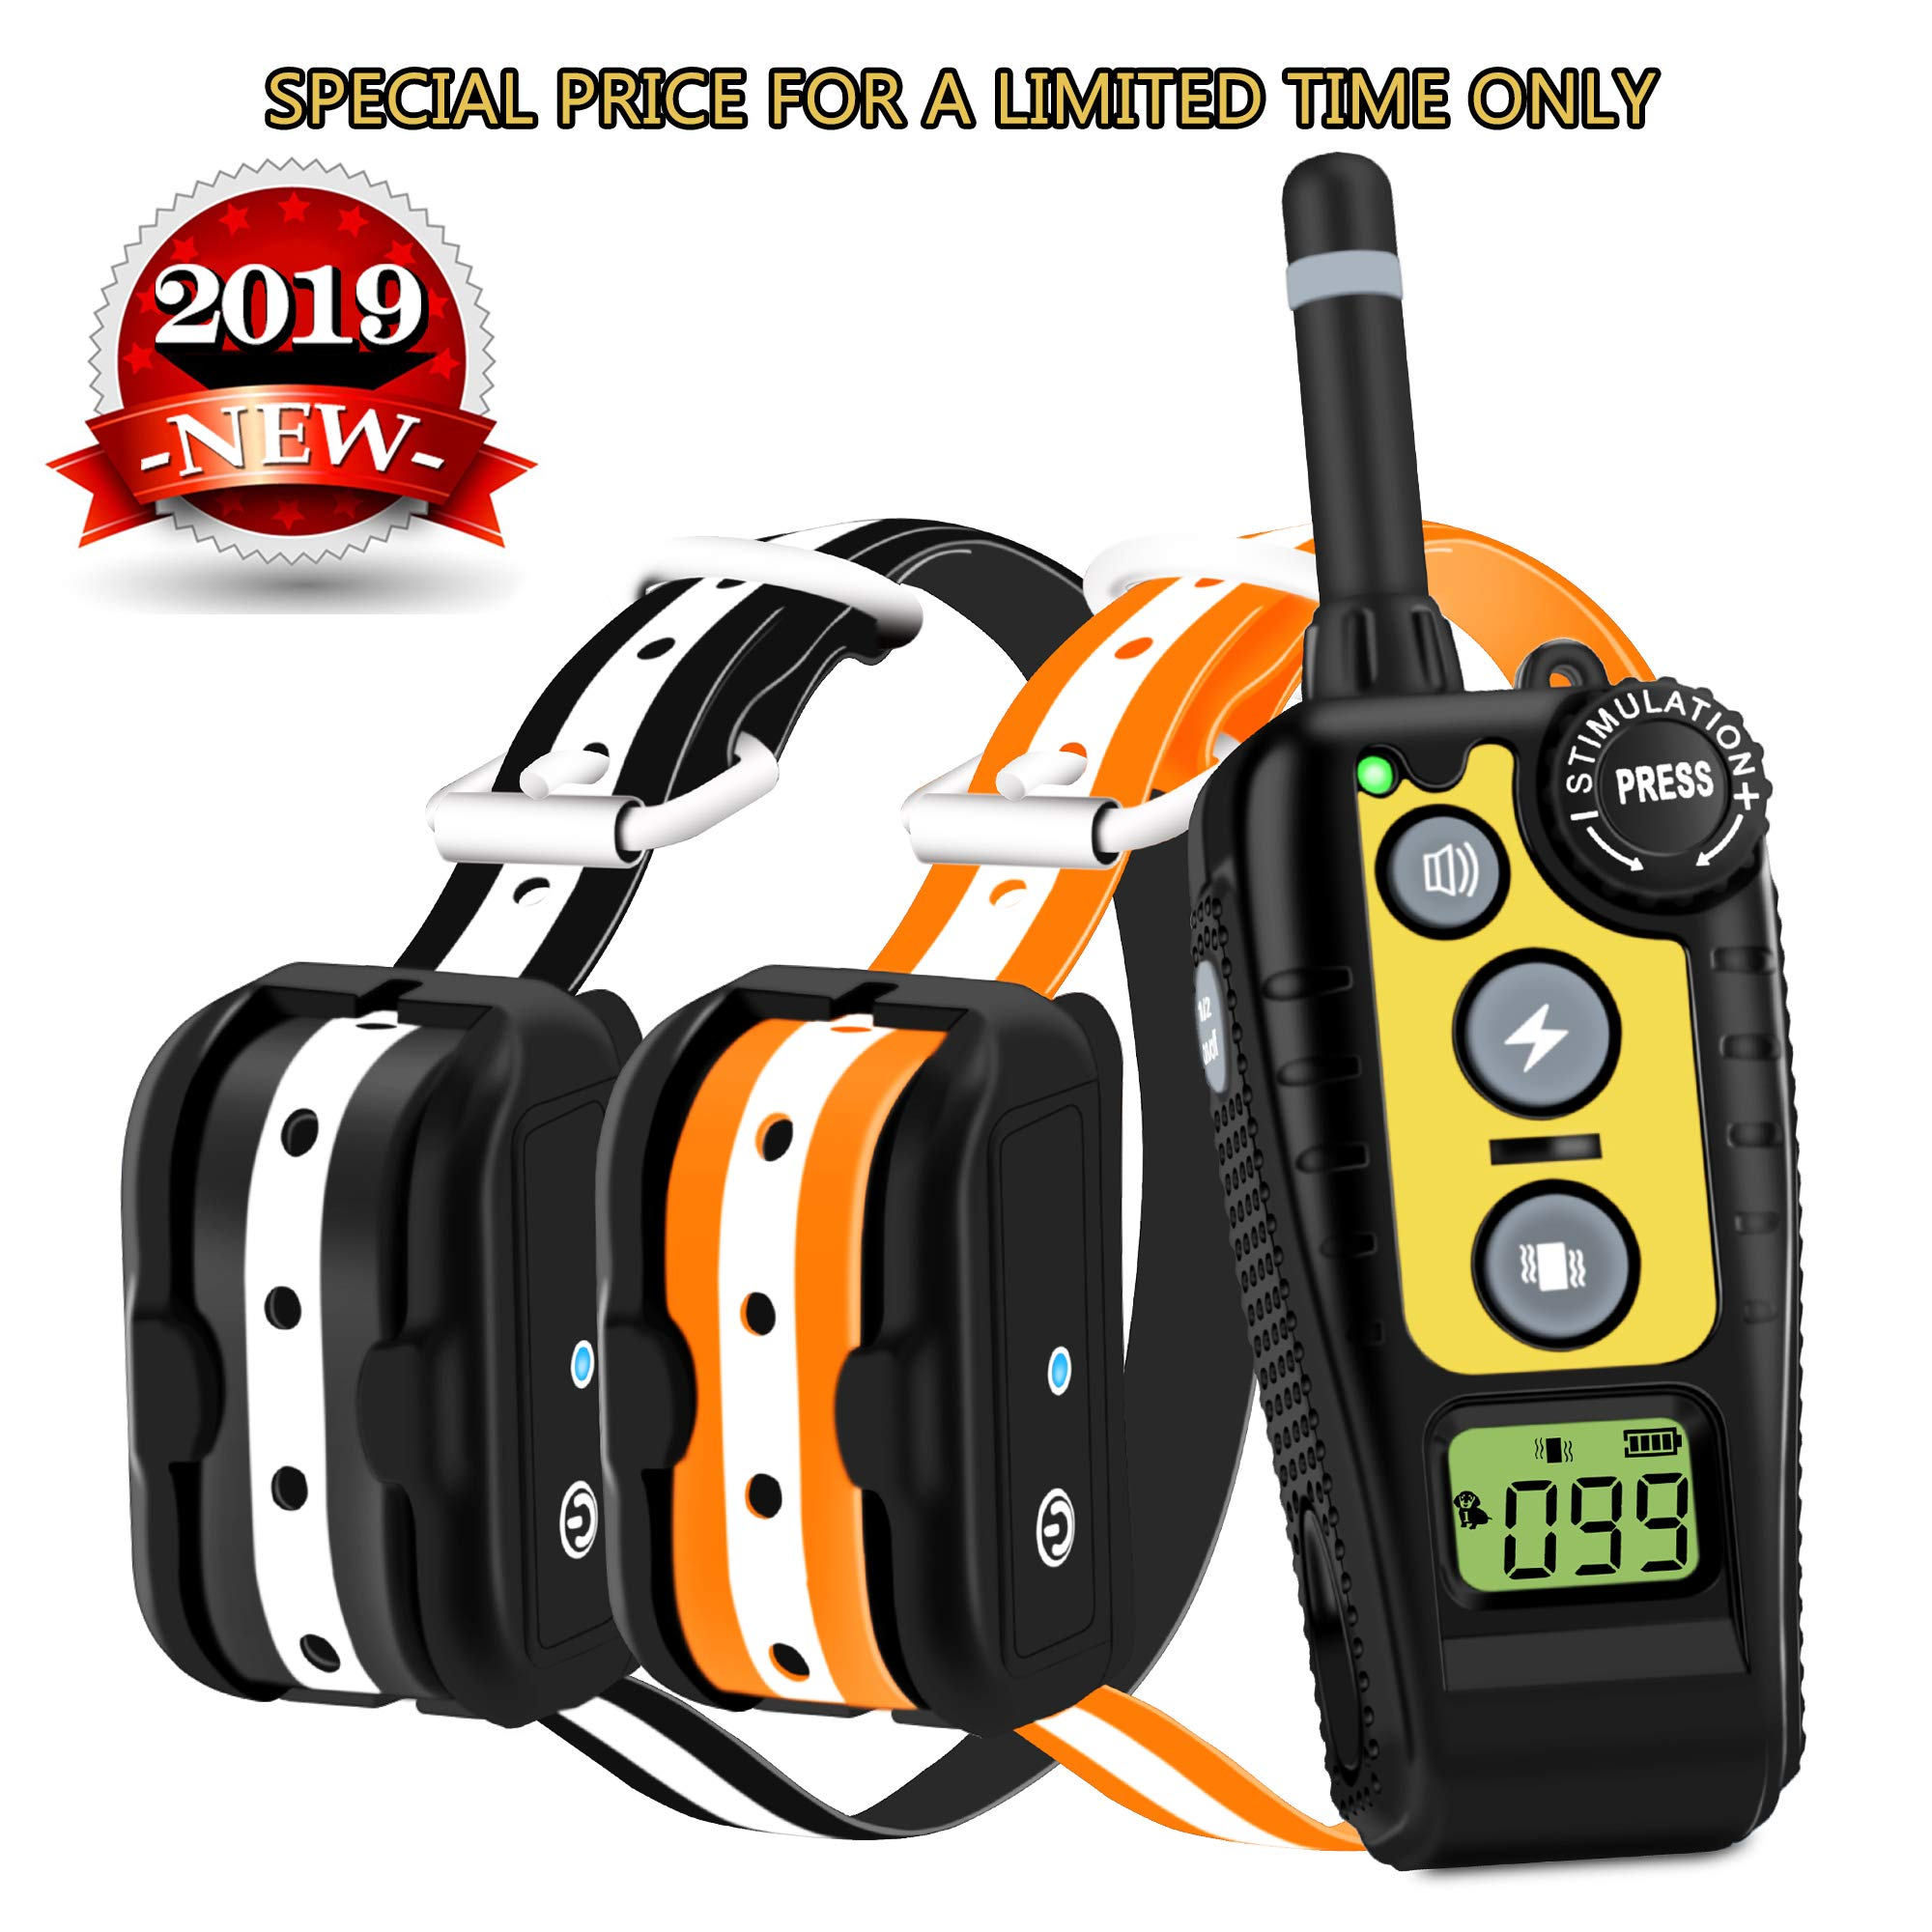 Luckgot Dog Training Collar for 2 Dogs Waterproof and Rechargeable Shock Collar with Security Anti-Shock Remote,Beep Vibration and Shock Modes for Small Medium and Large Dogs Range 1600 Ft